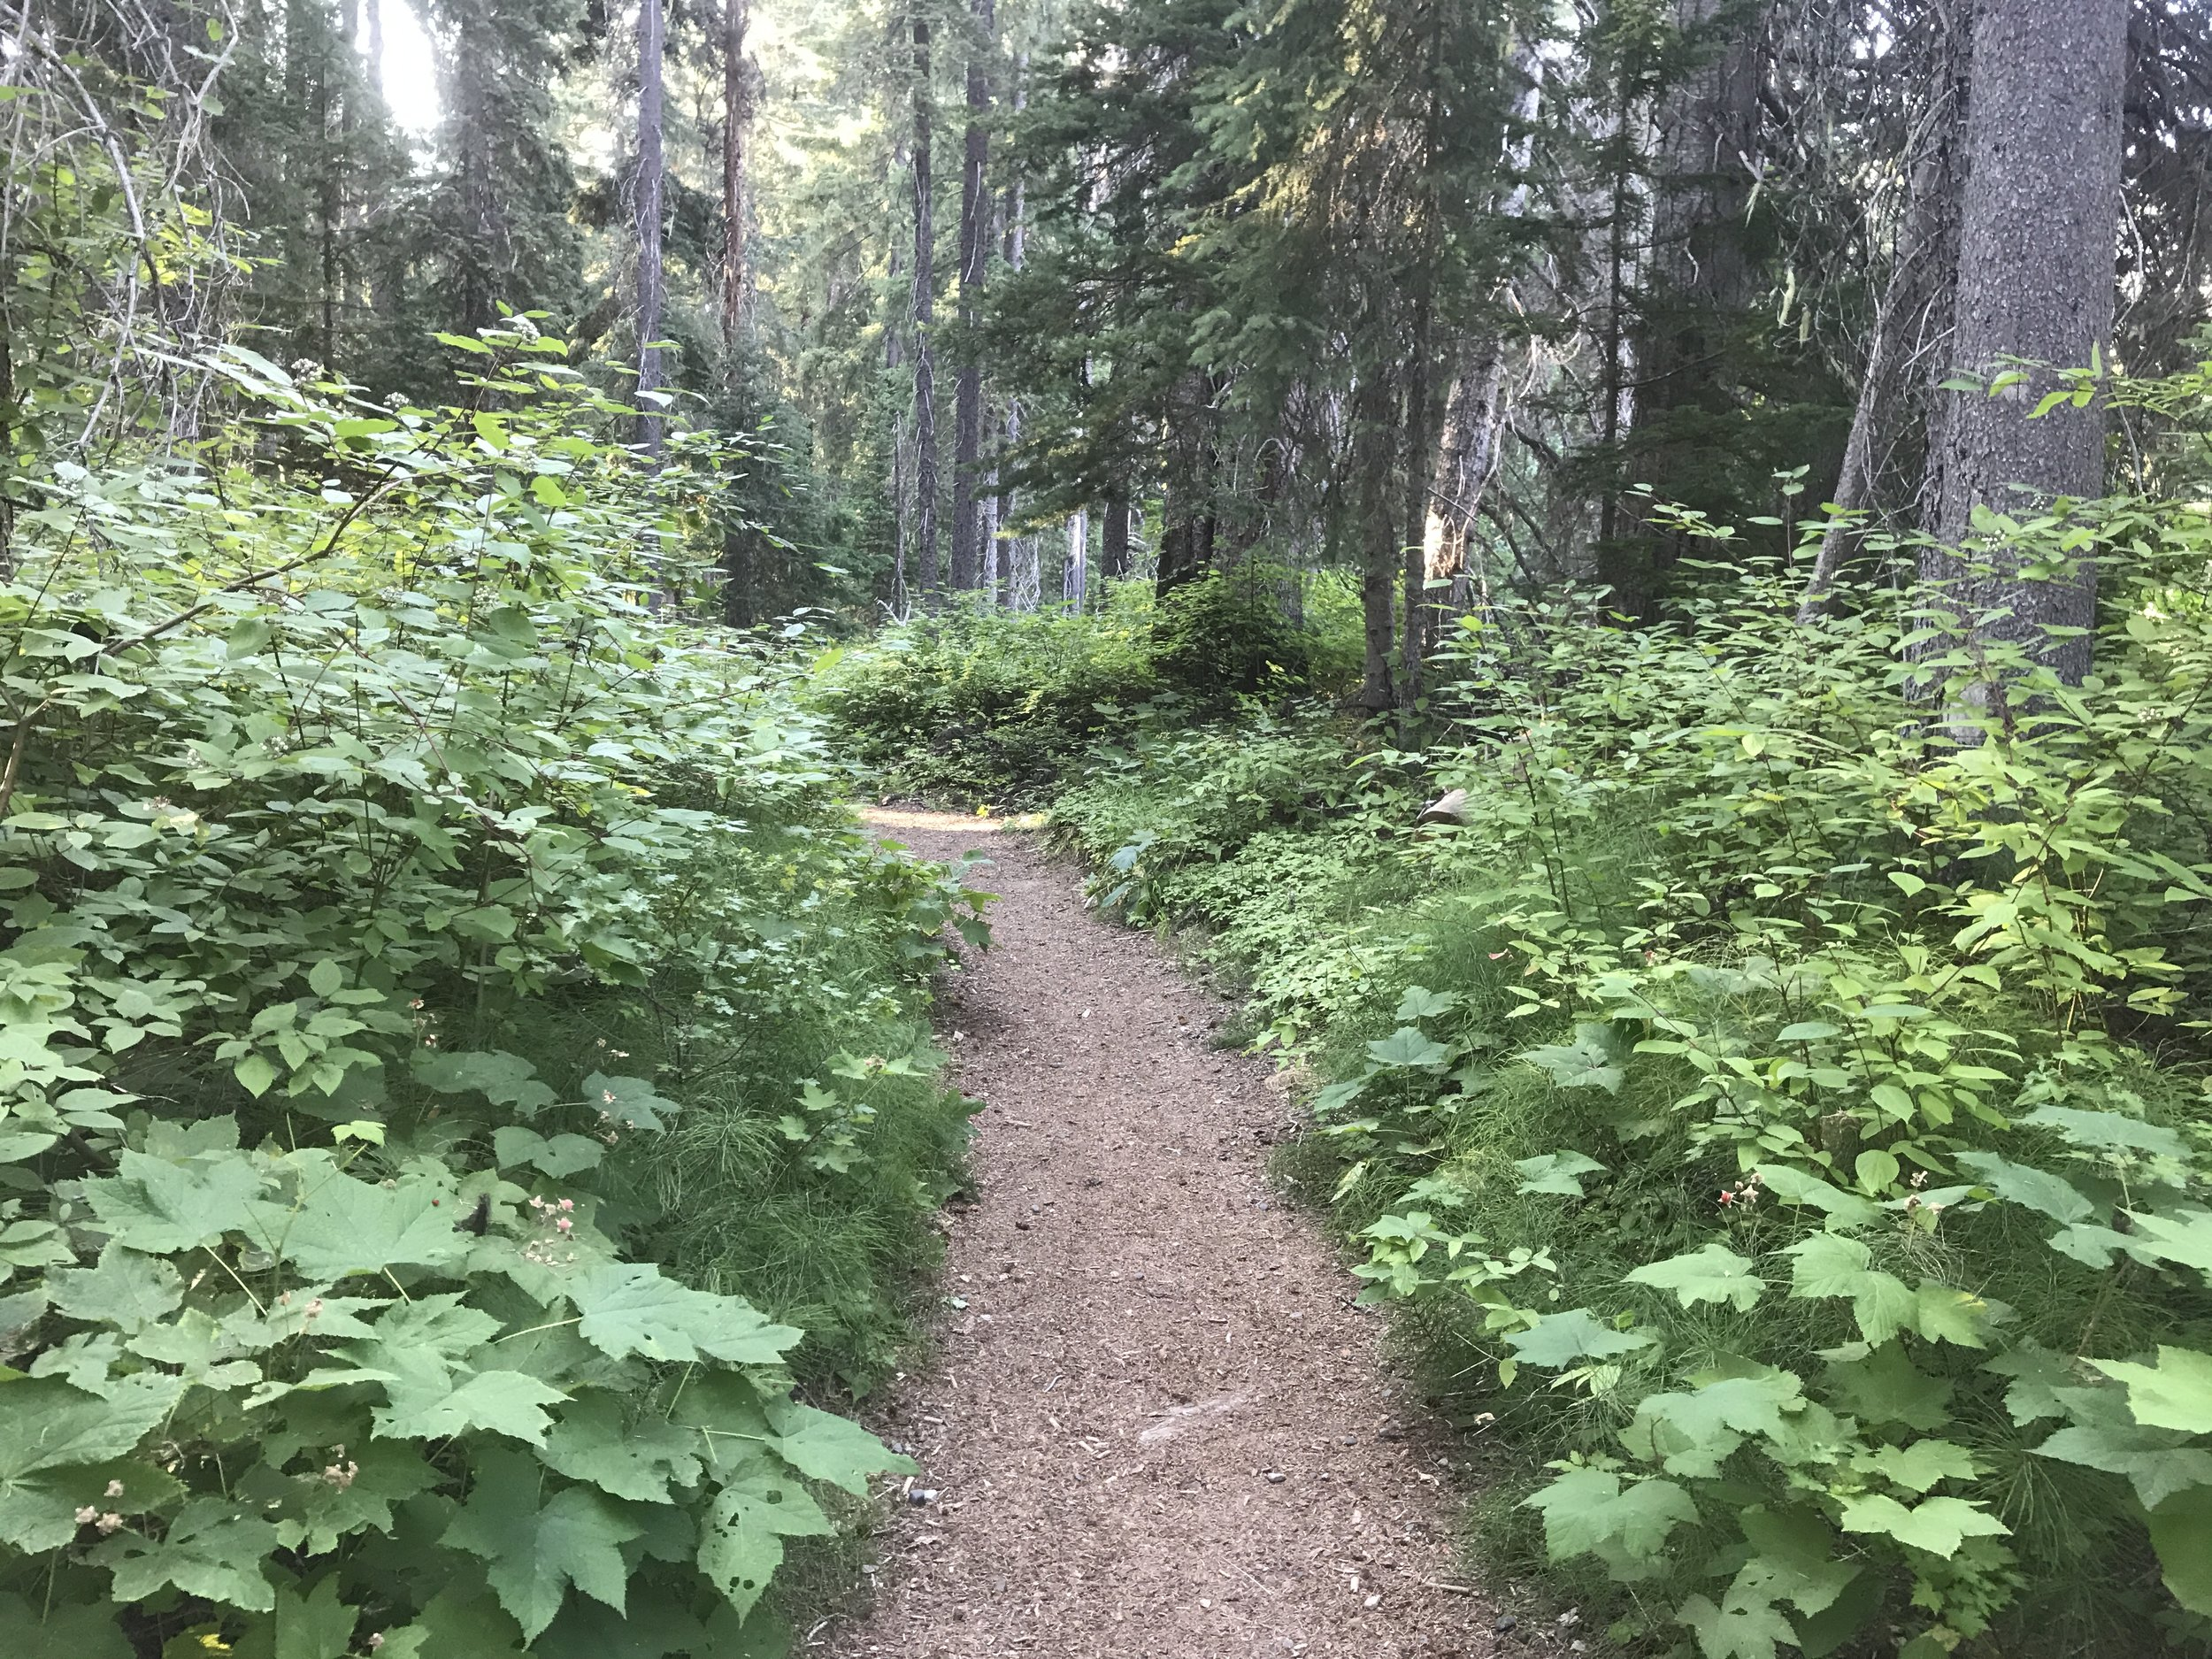 The portion of the trail I hiked in Canada was lush with dense undergrowth below a canopy of tall pines.